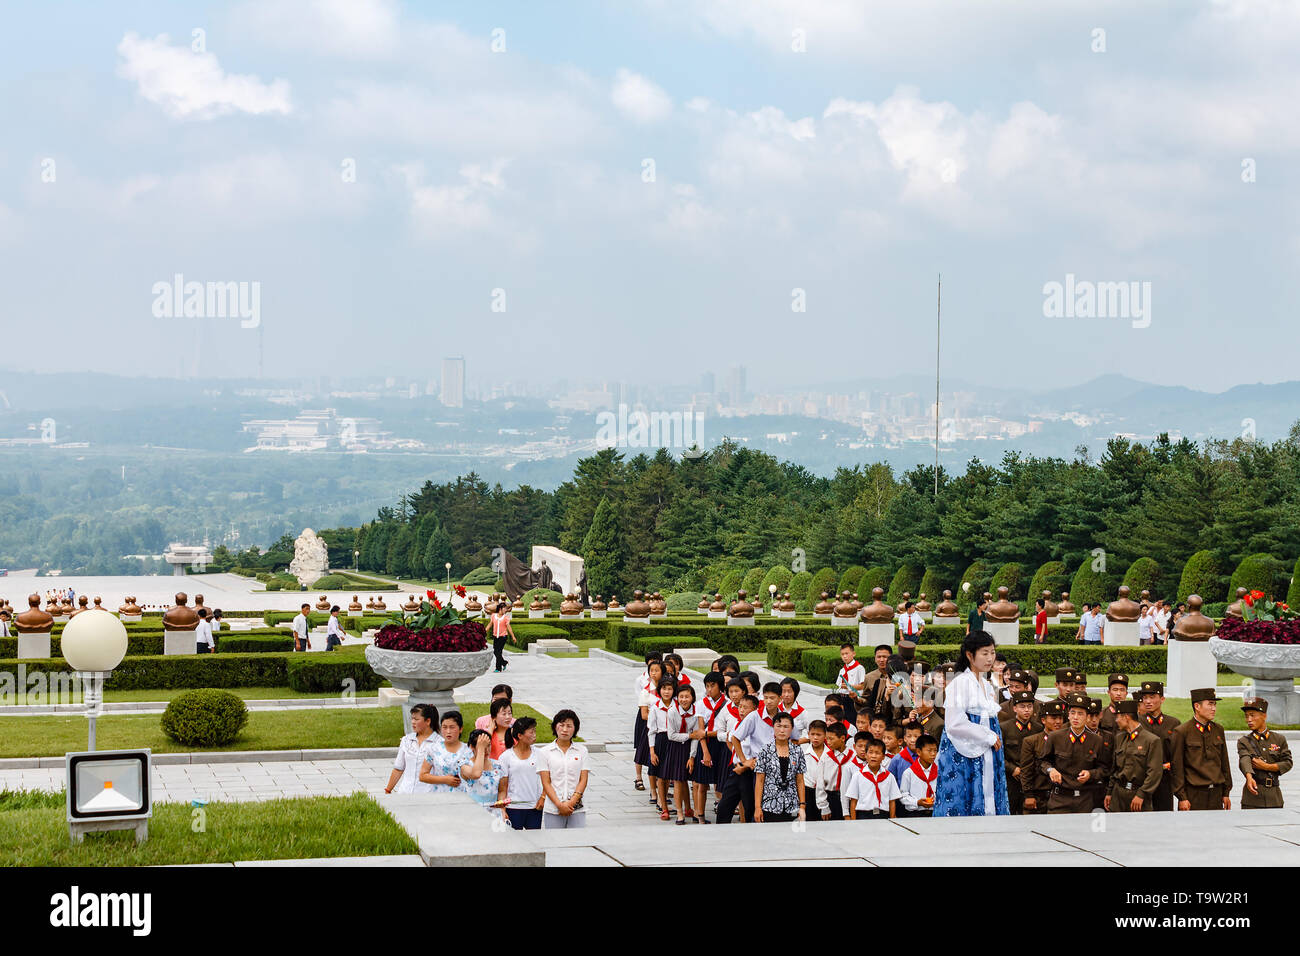 Pyongyang, North Korea - July 27, 2014: Korean schoolchildren and soldiers at the memorial cemetery of revolutionaries in Pyongyang. - Stock Image